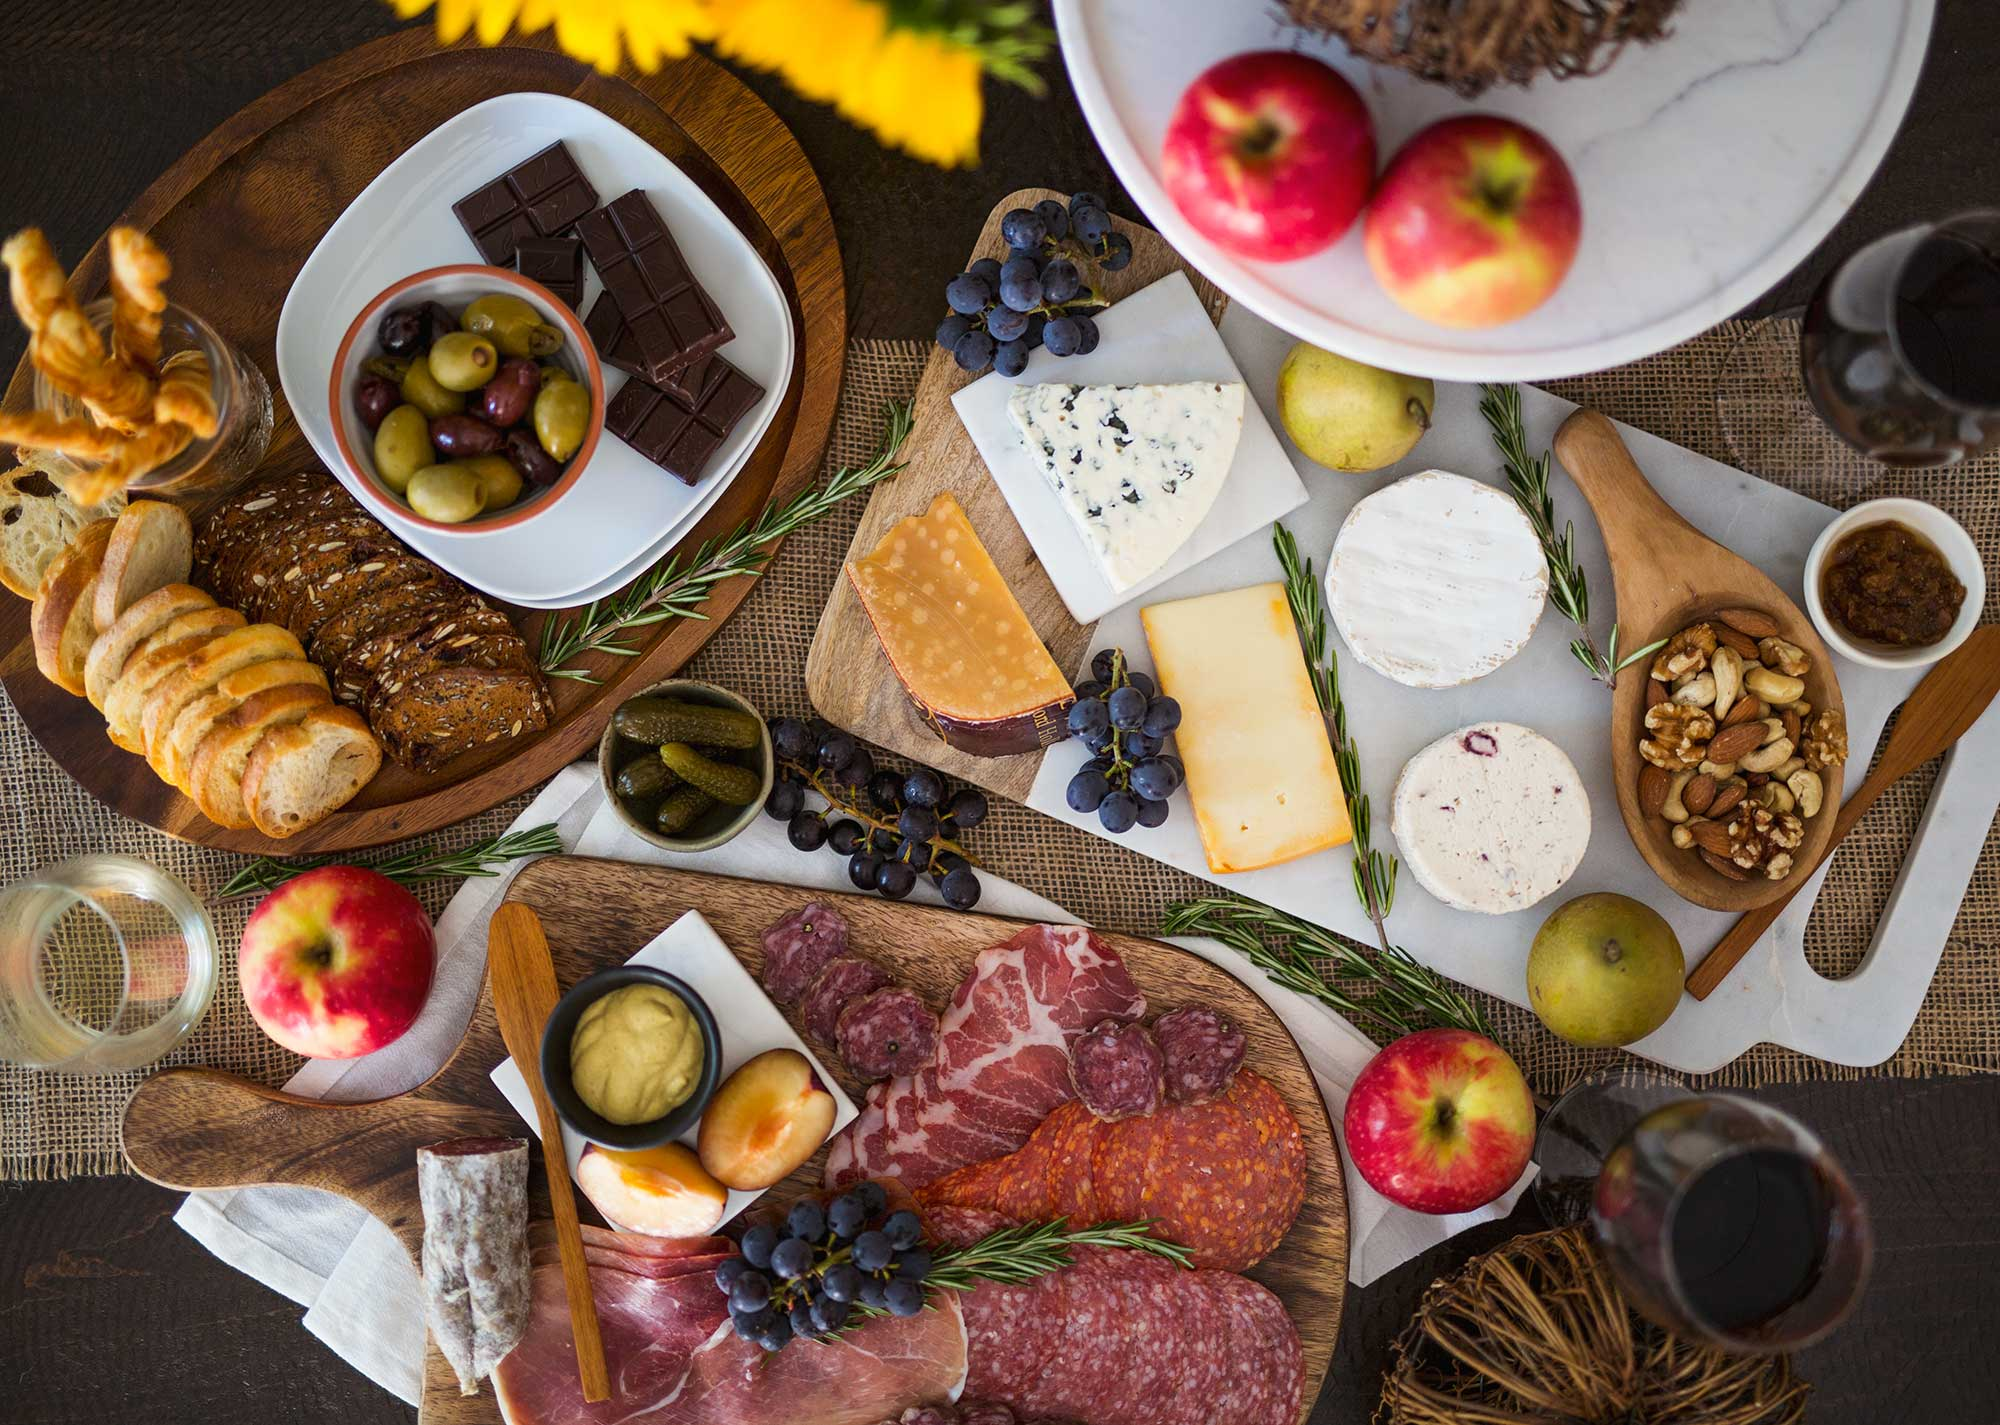 Build-Thanksgiving-Charcuterie-Board